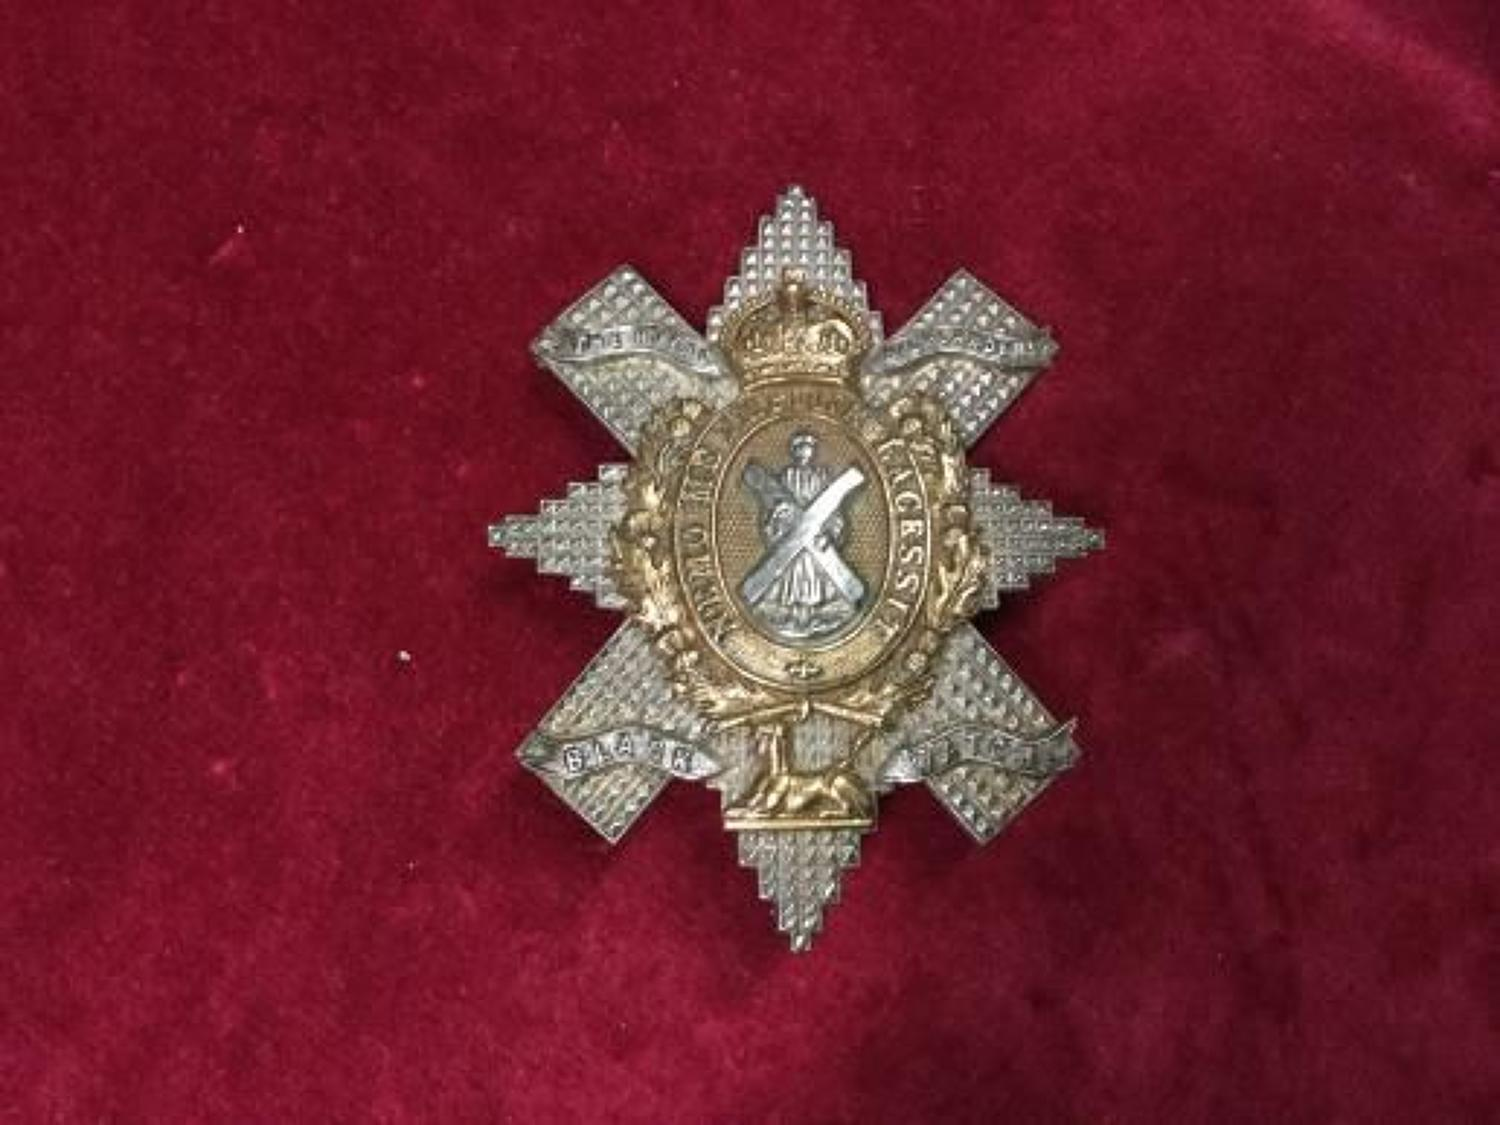 WO's/SNCO's The Black Watch (Royal Highlanders) Glengarry Badge